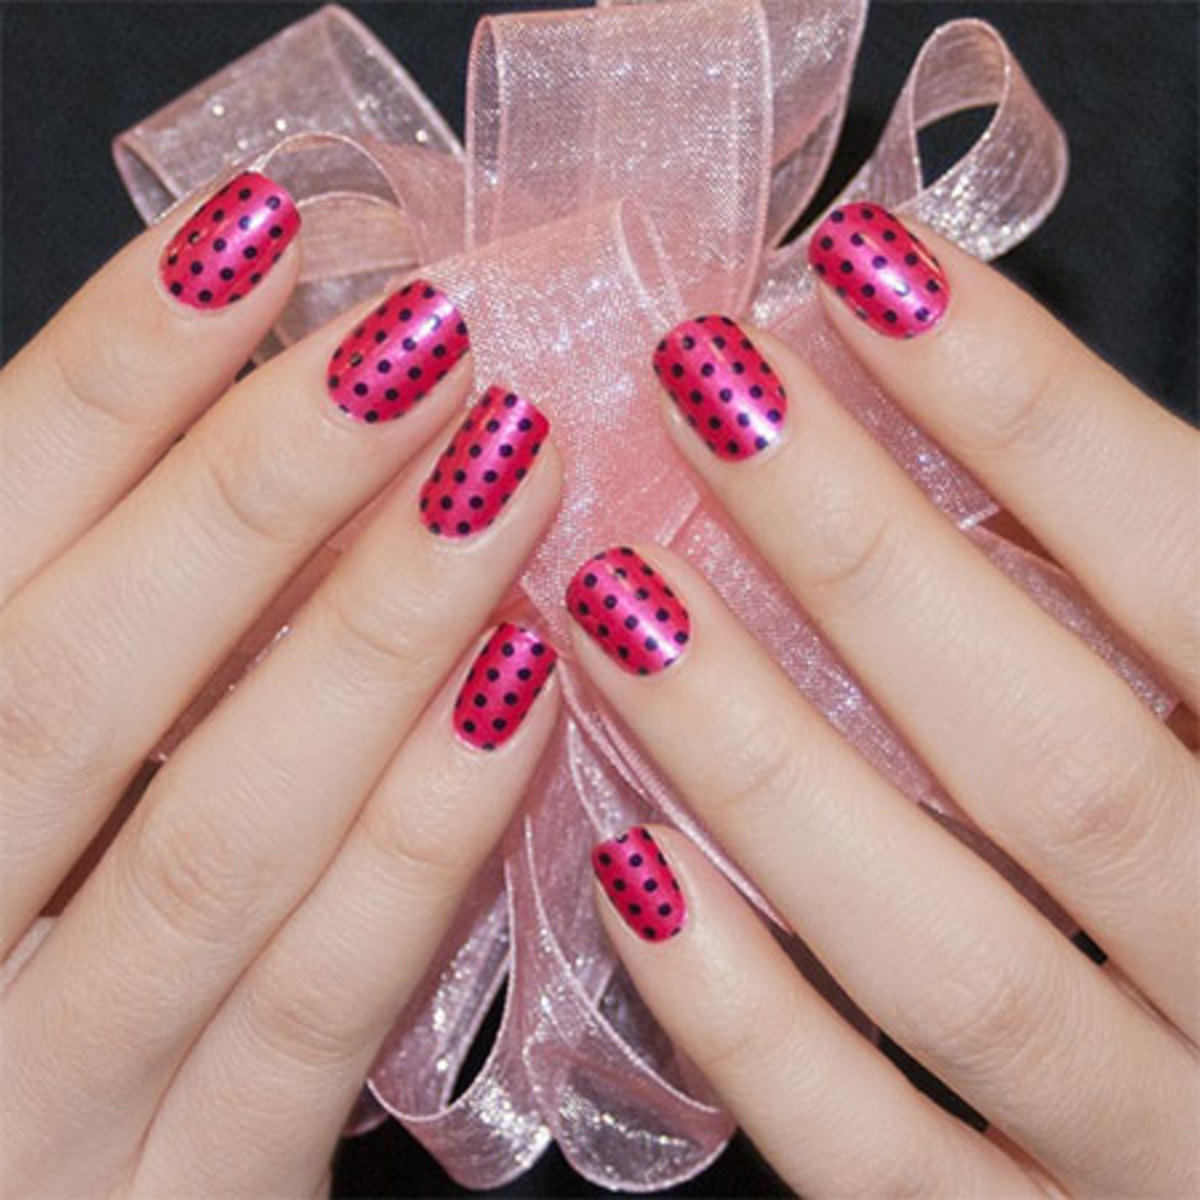 Pink polka-dotted nails